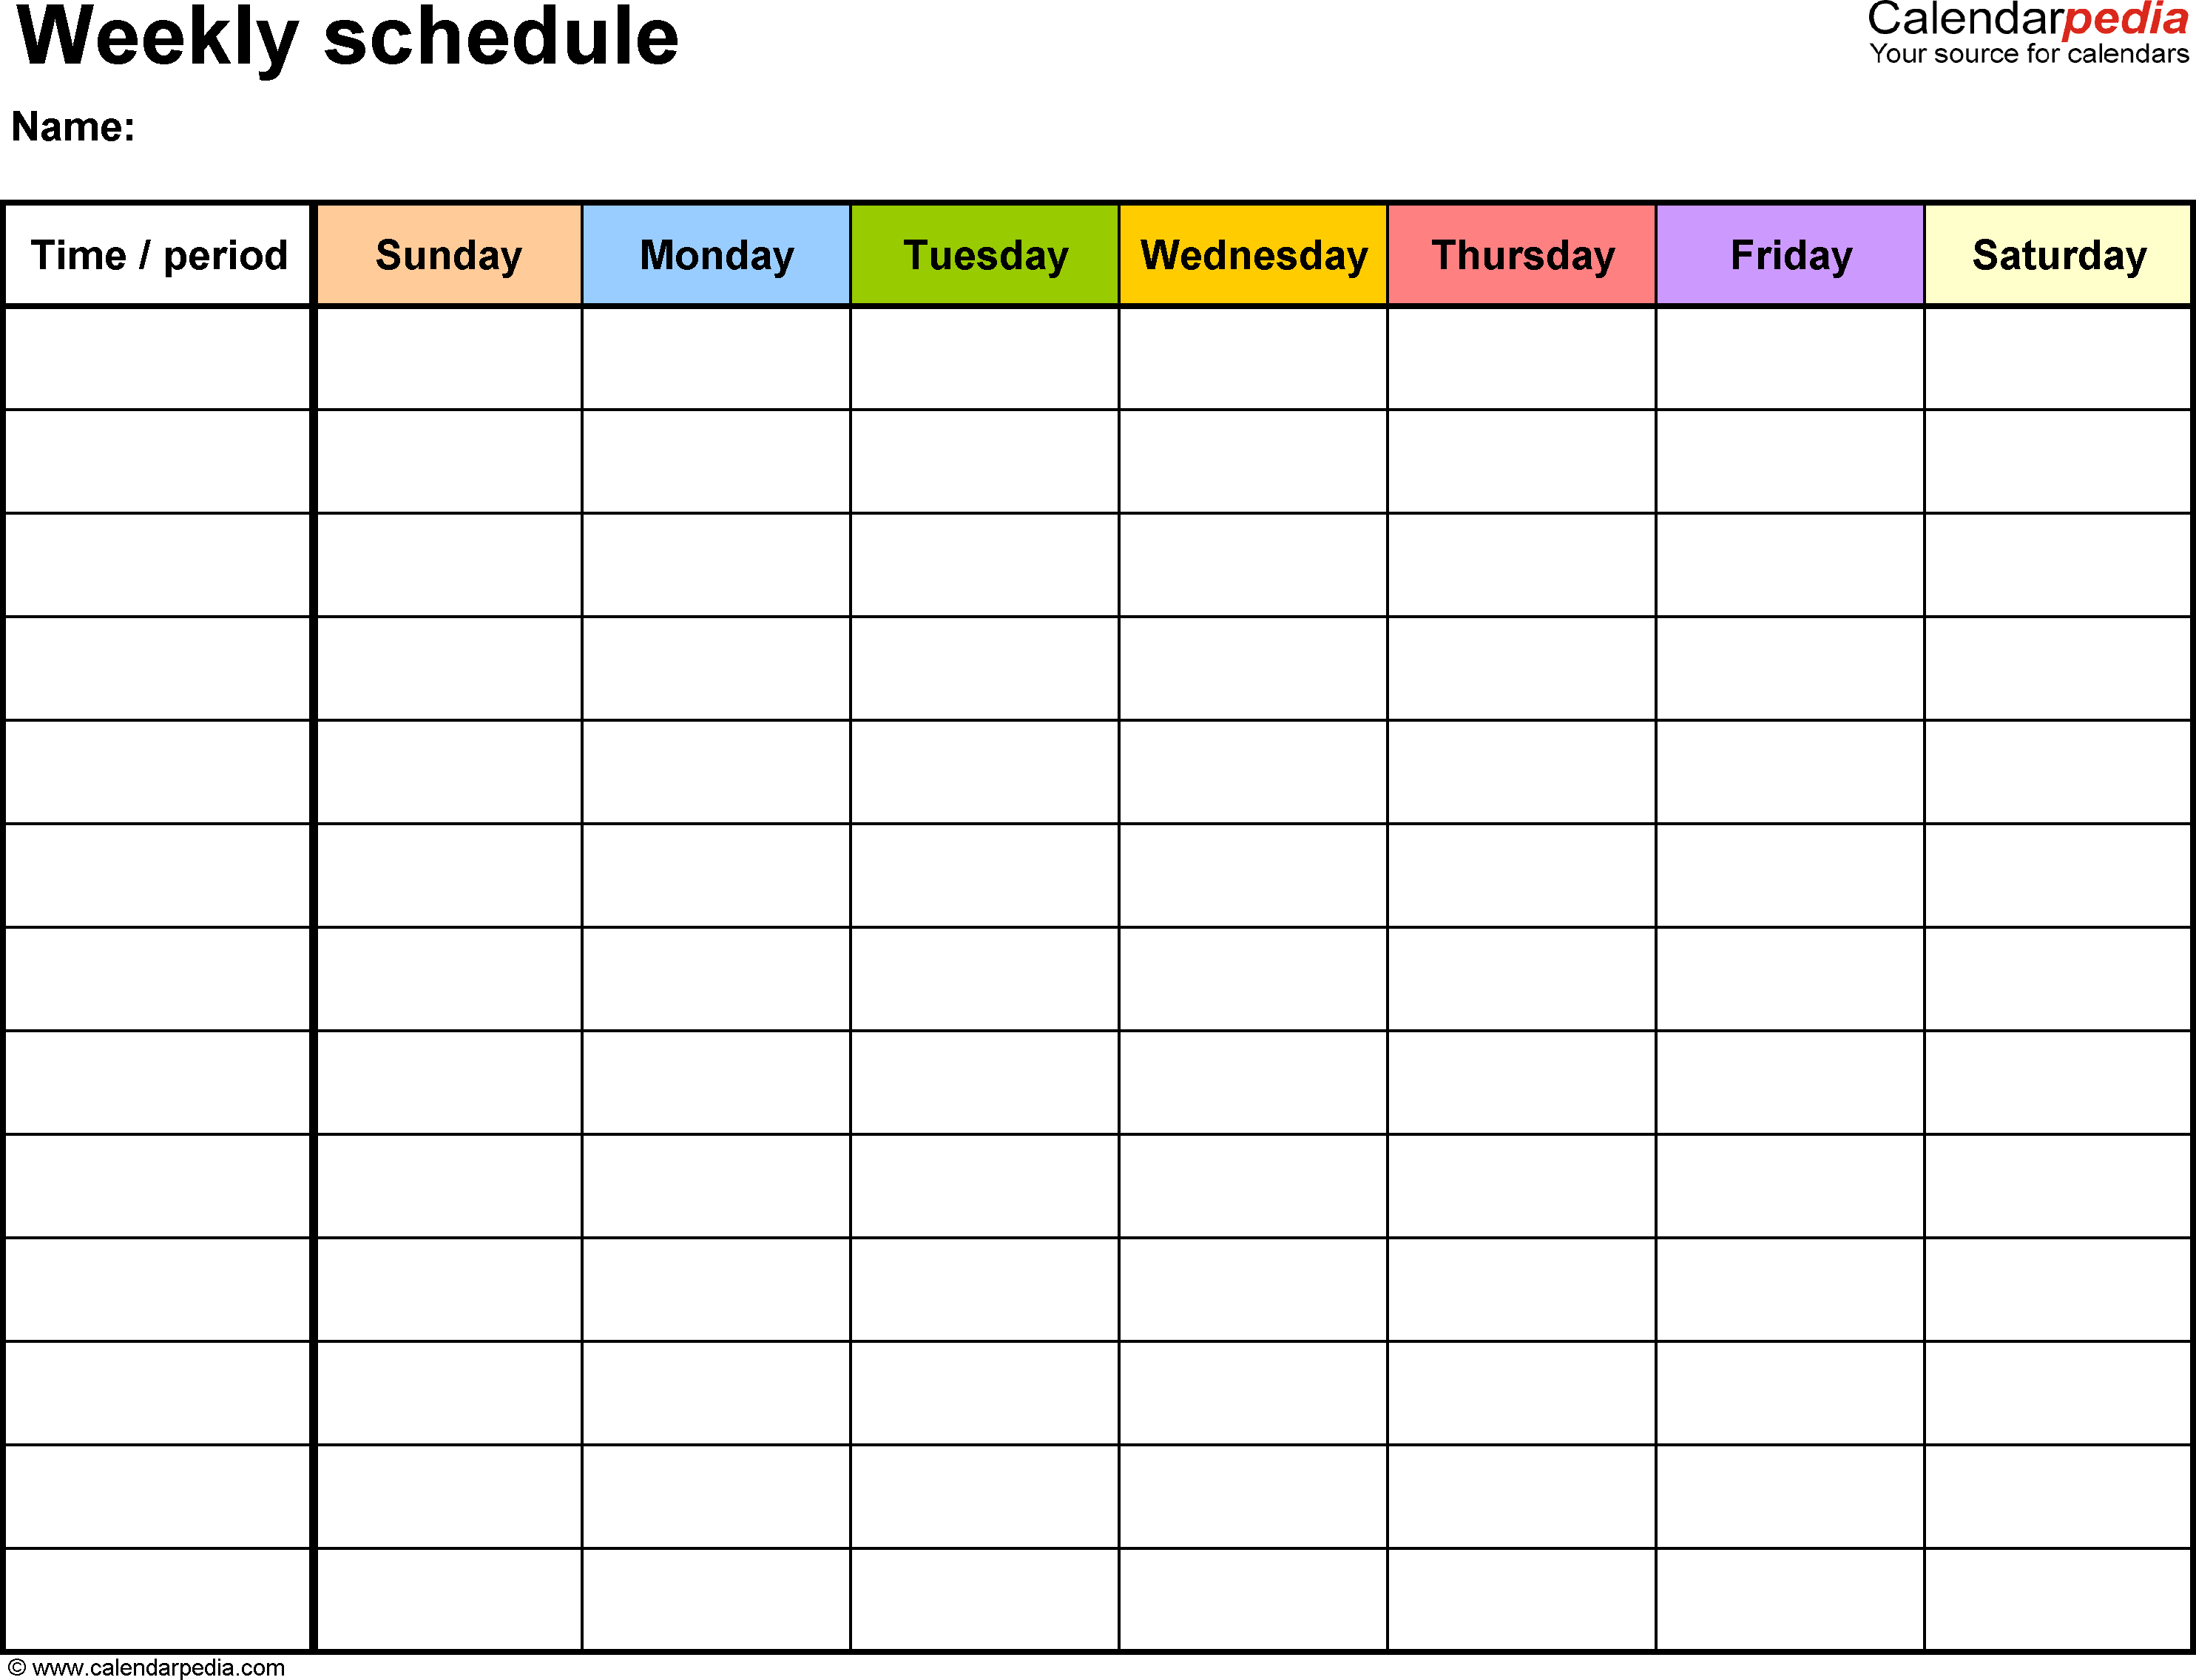 Free Weekly Schedule Templates For Word  18 Templates throughout 5 Day Monthly Calendar